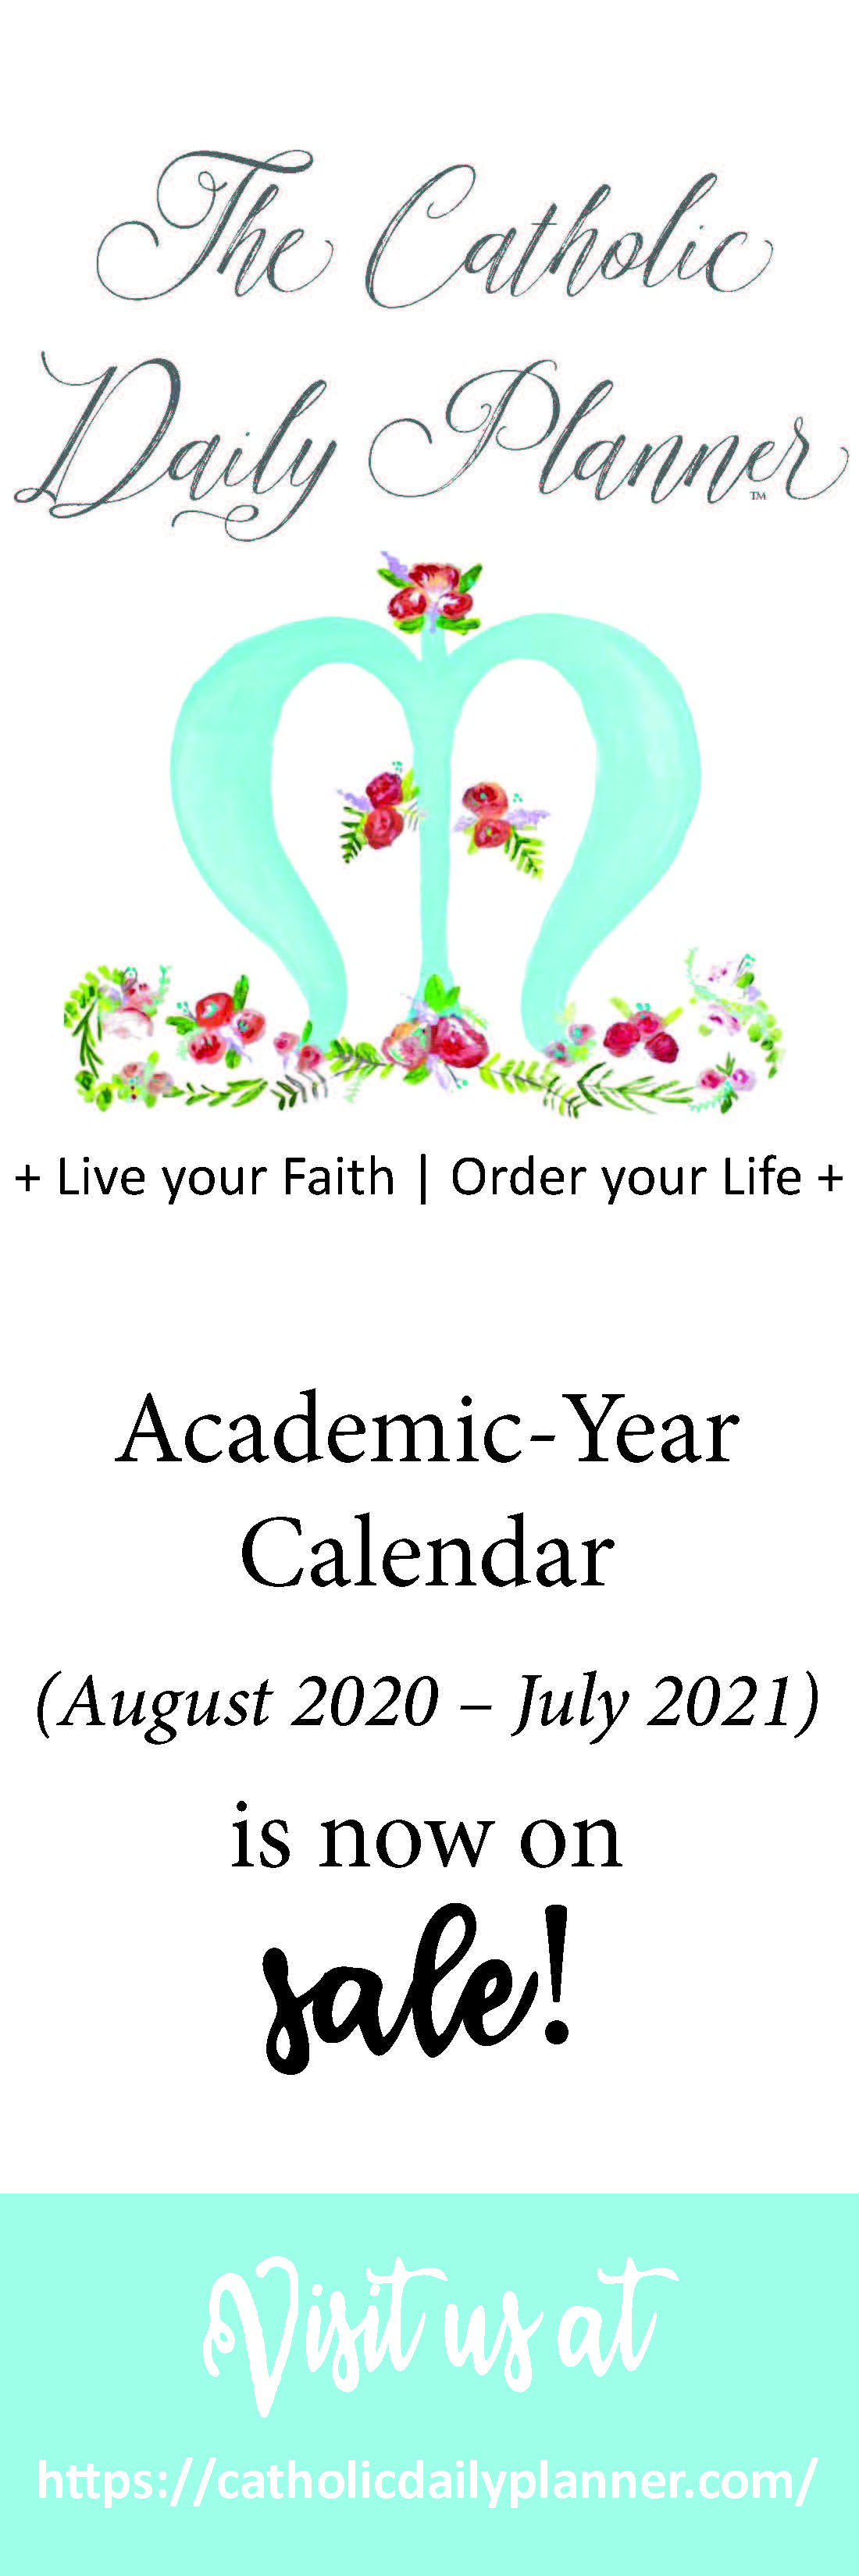 Catholic Daily Planner